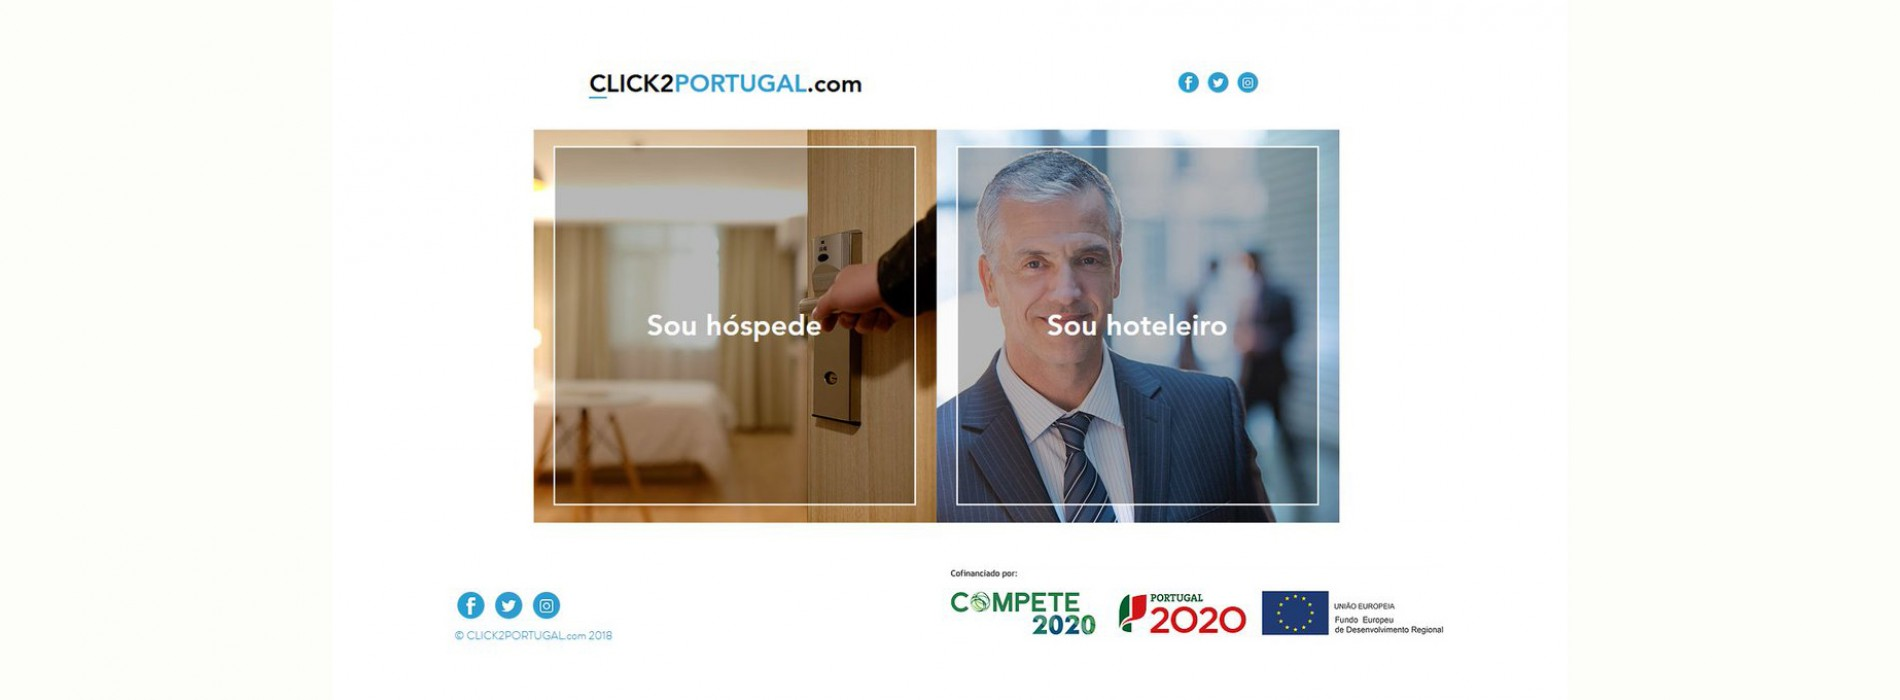 Portuguese Hotels Association to launch online booking portal to welcome international visitors